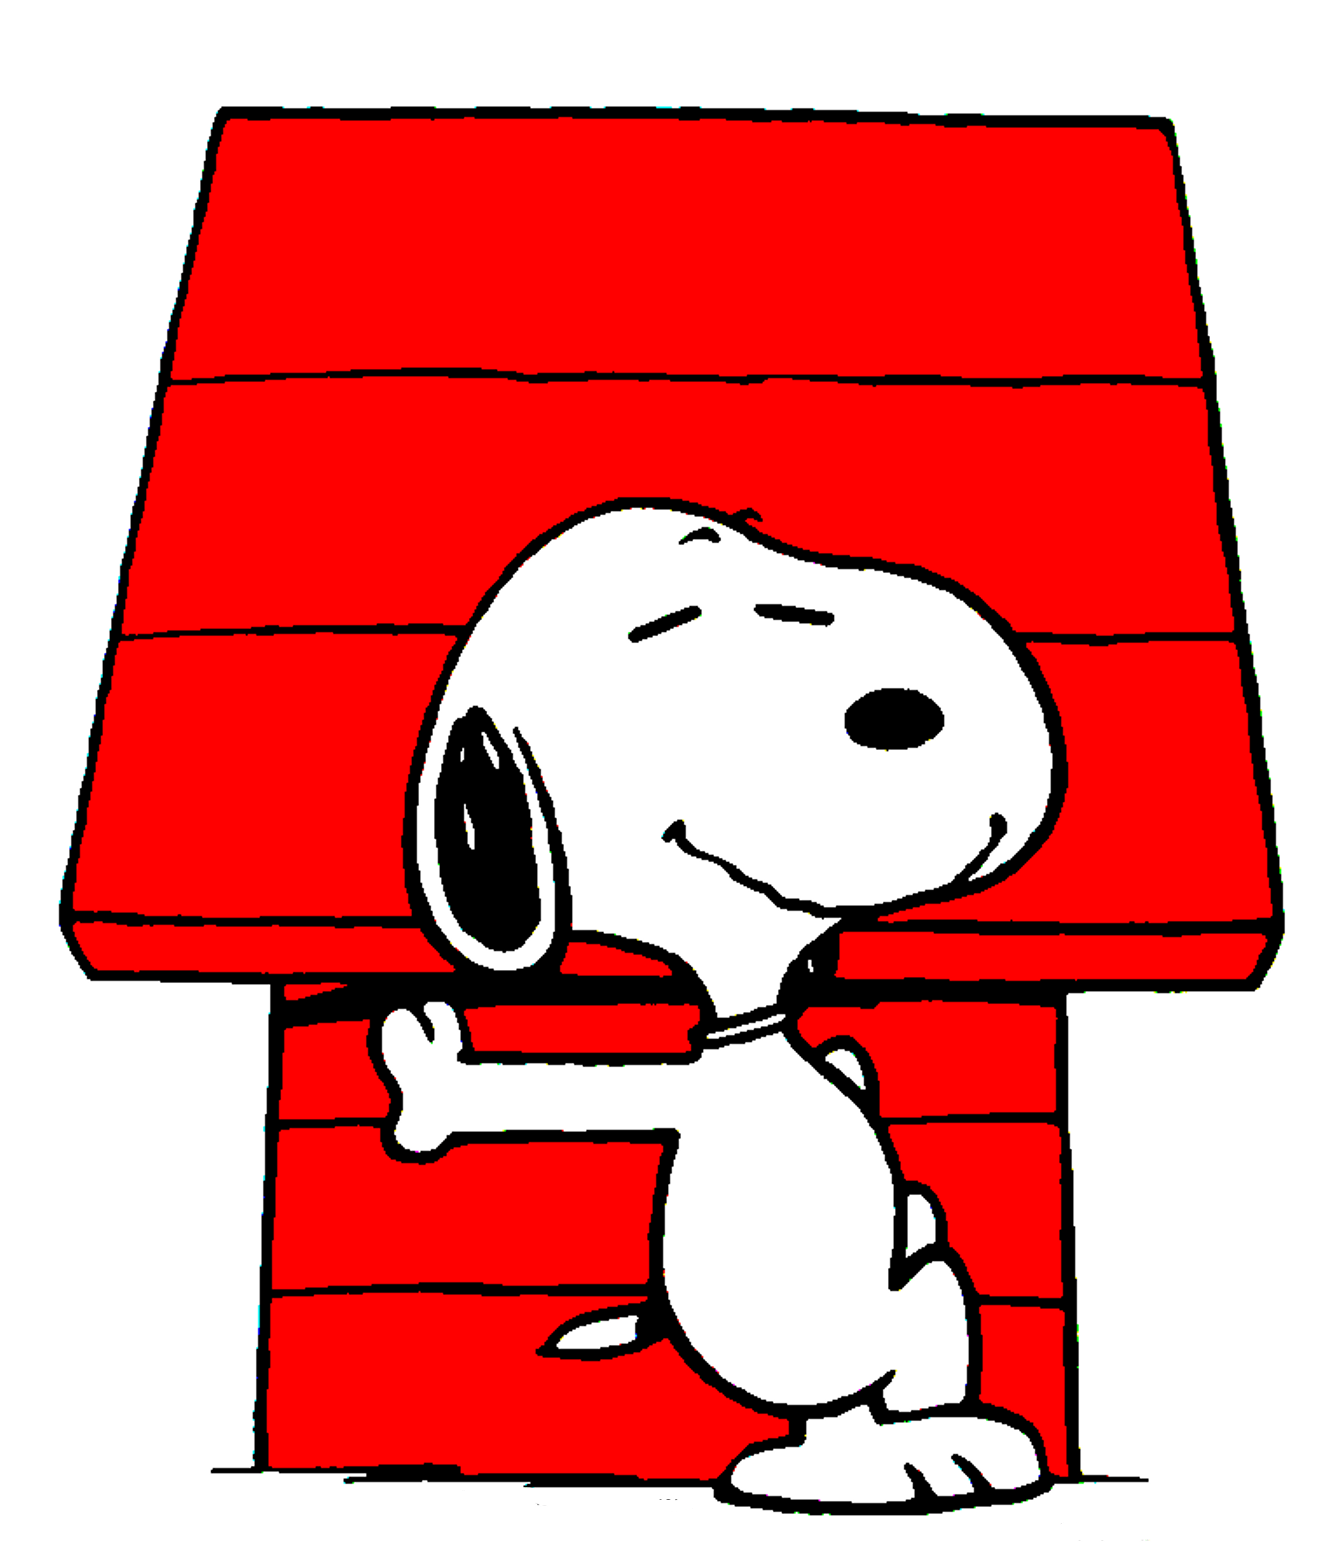 Doghouse clipart dog toy. Image result for snoopy